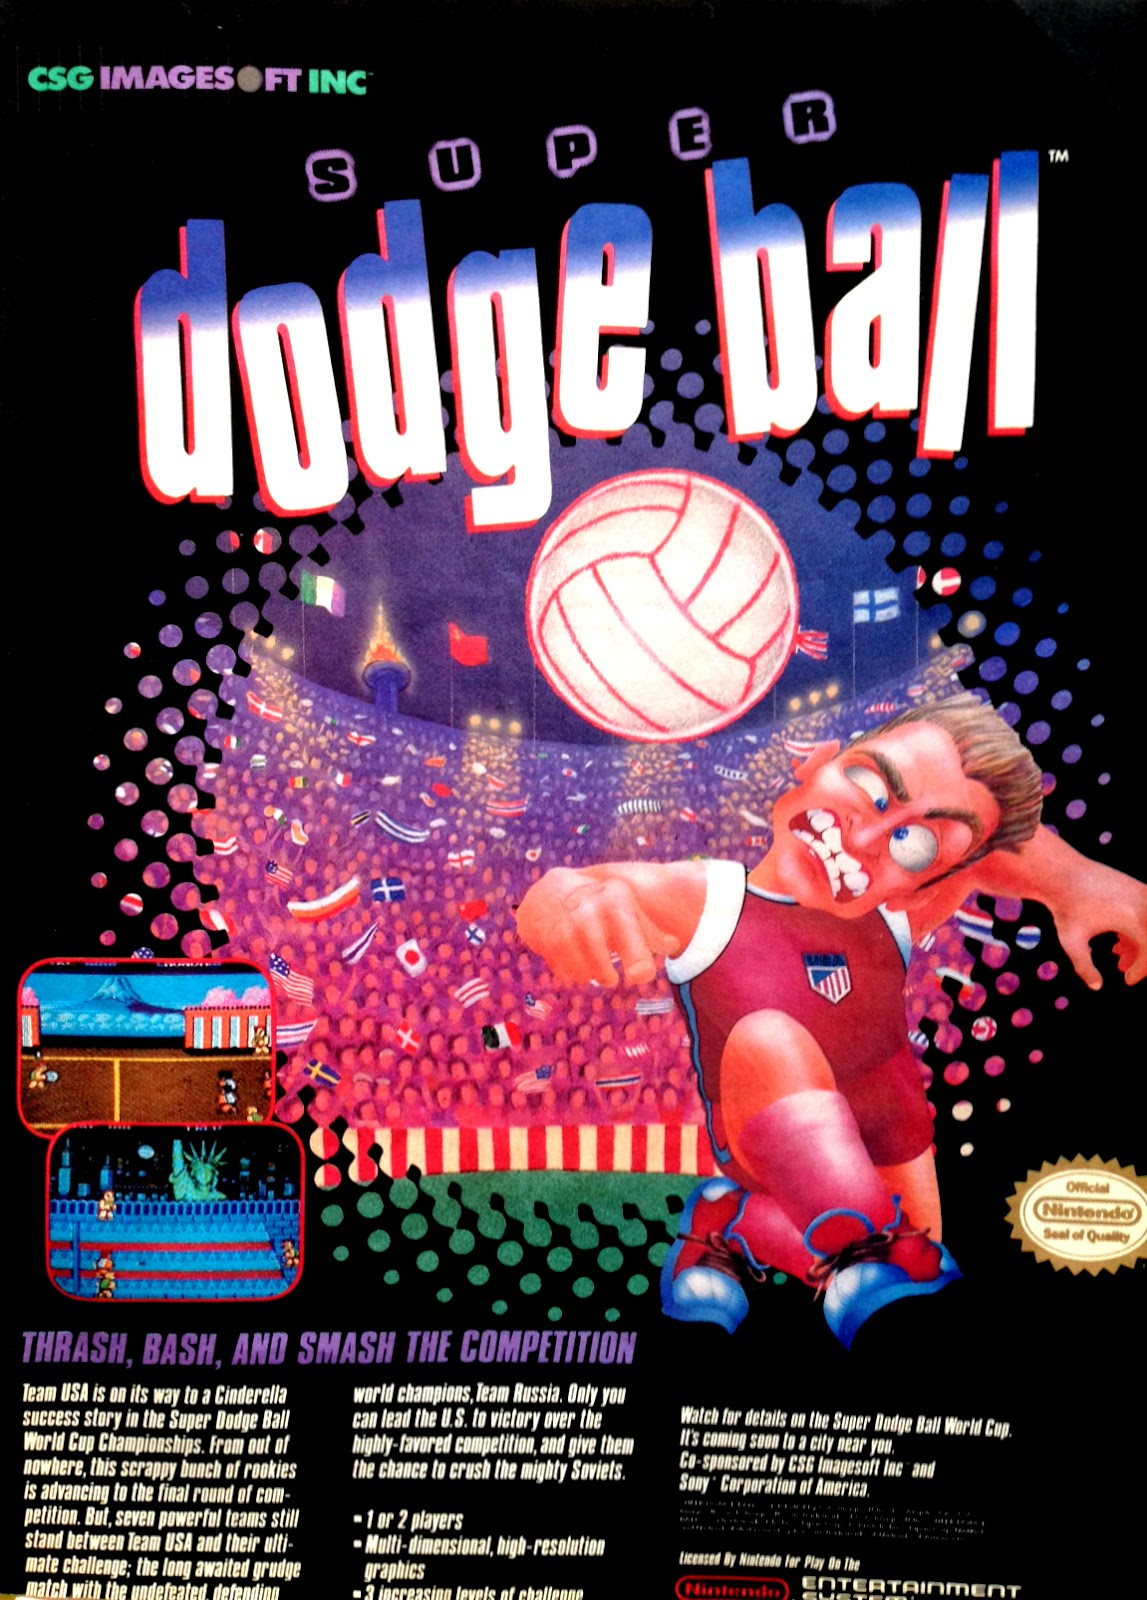 Super Dodge Ball for NES advertisement